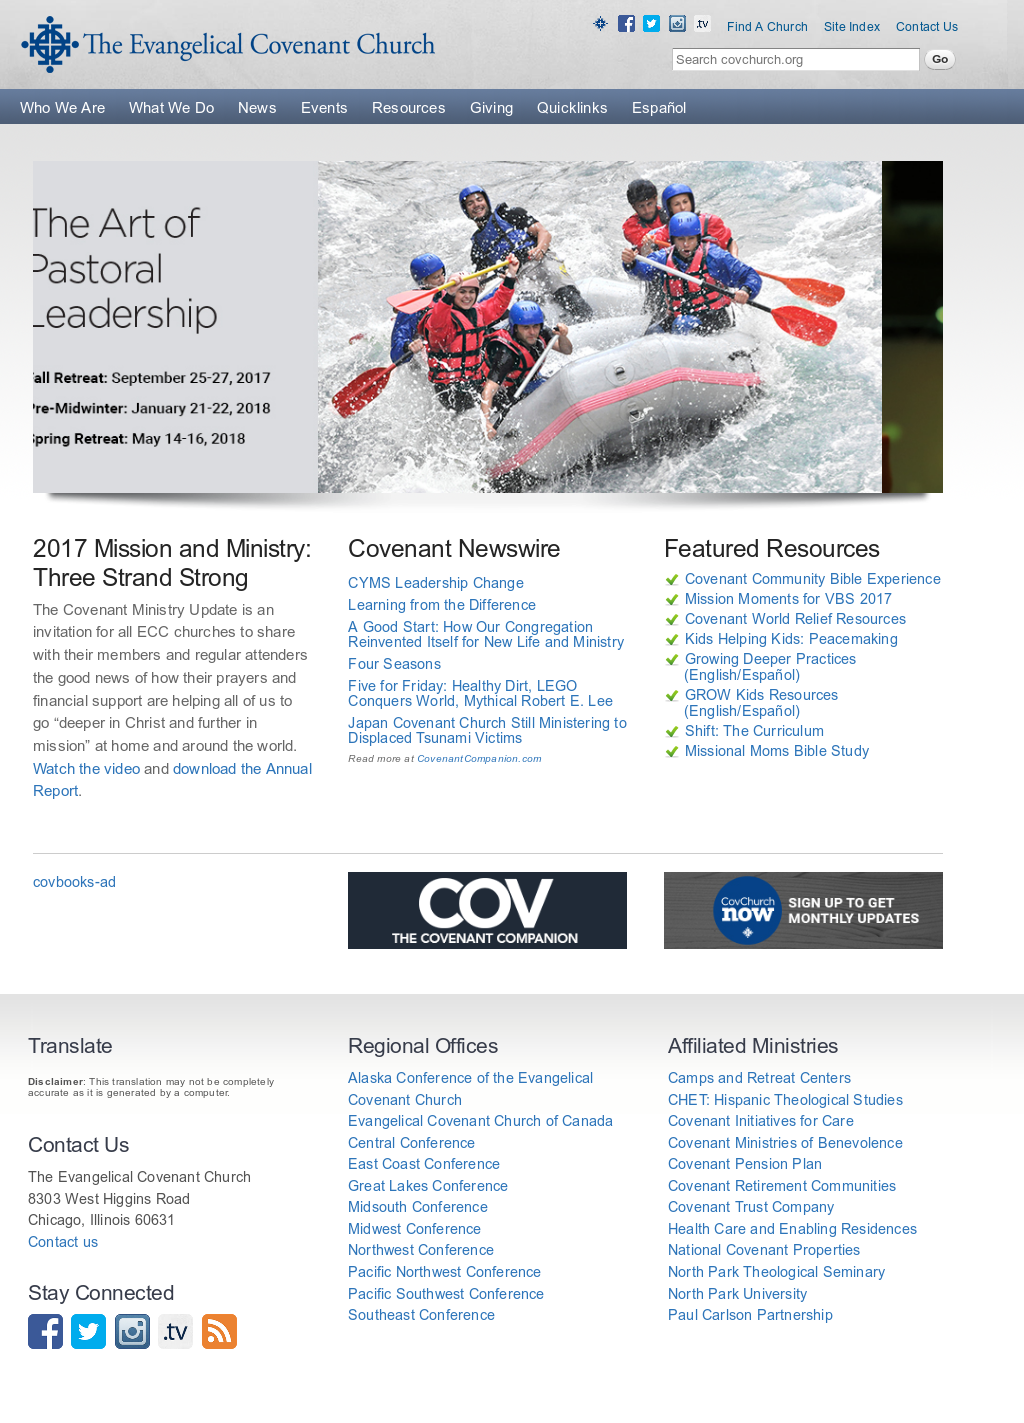 Covchurch Competitors, Revenue and Employees - Owler Company